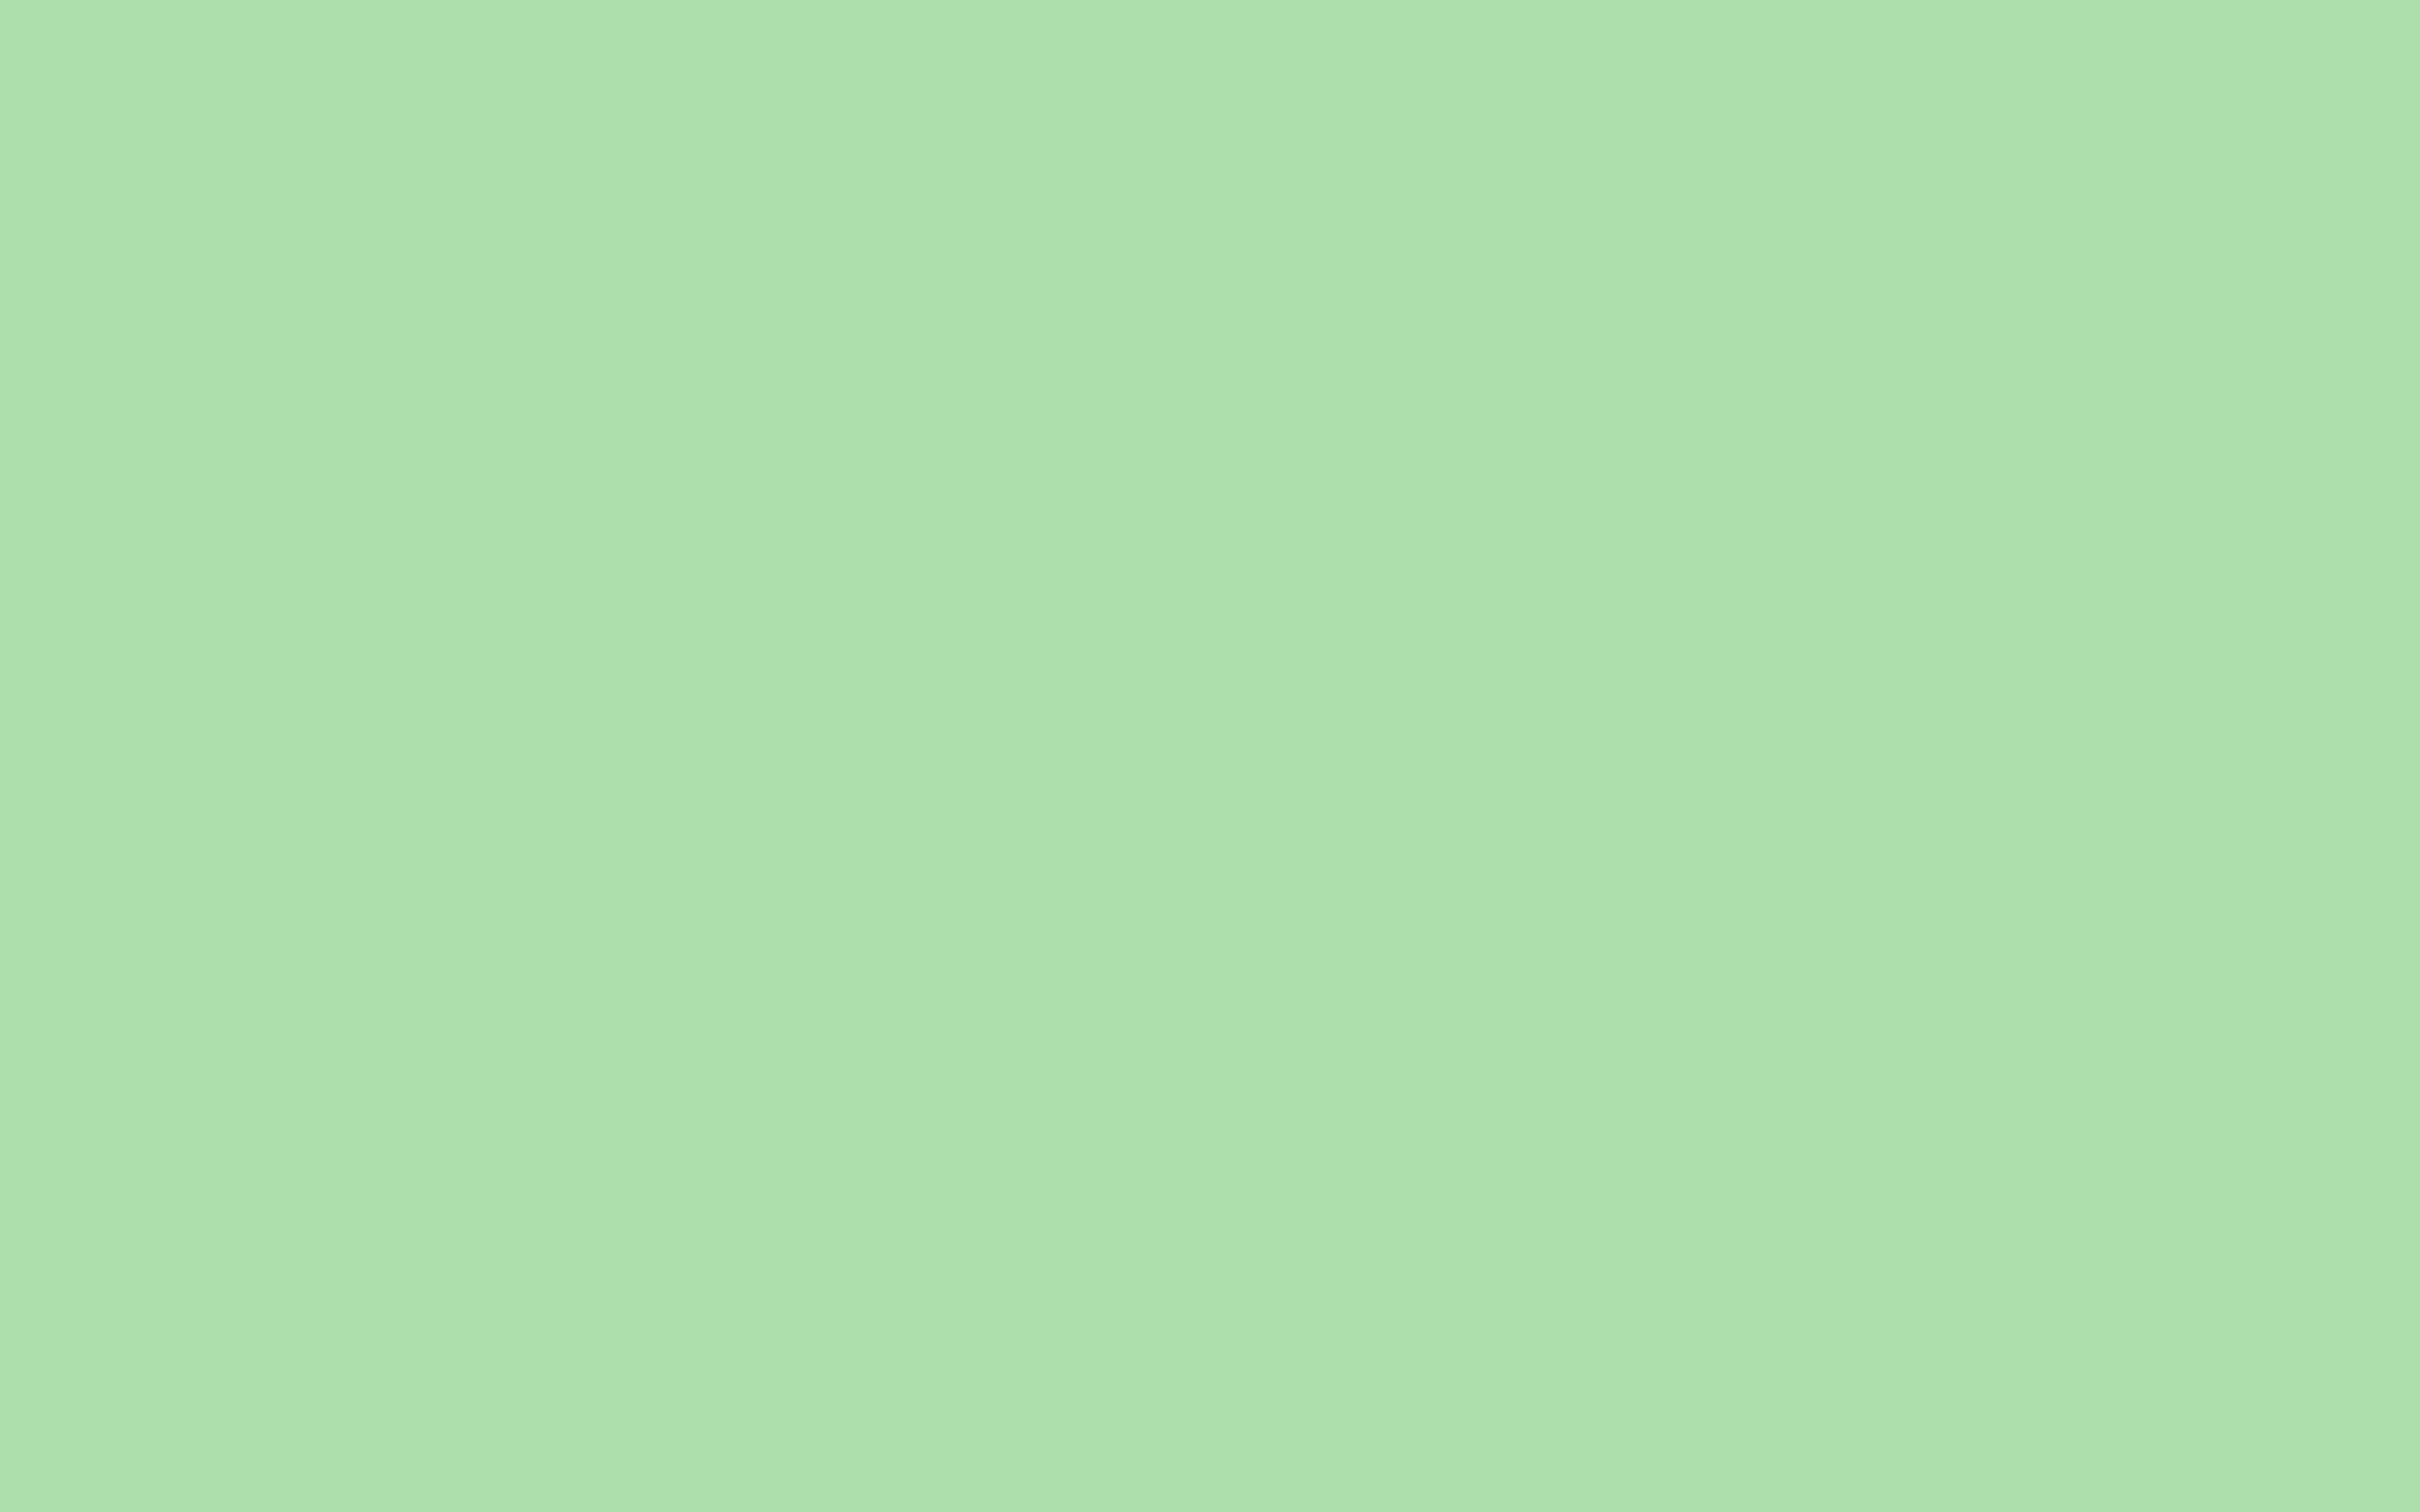 2560x1600 Light Moss Green Solid Color Background